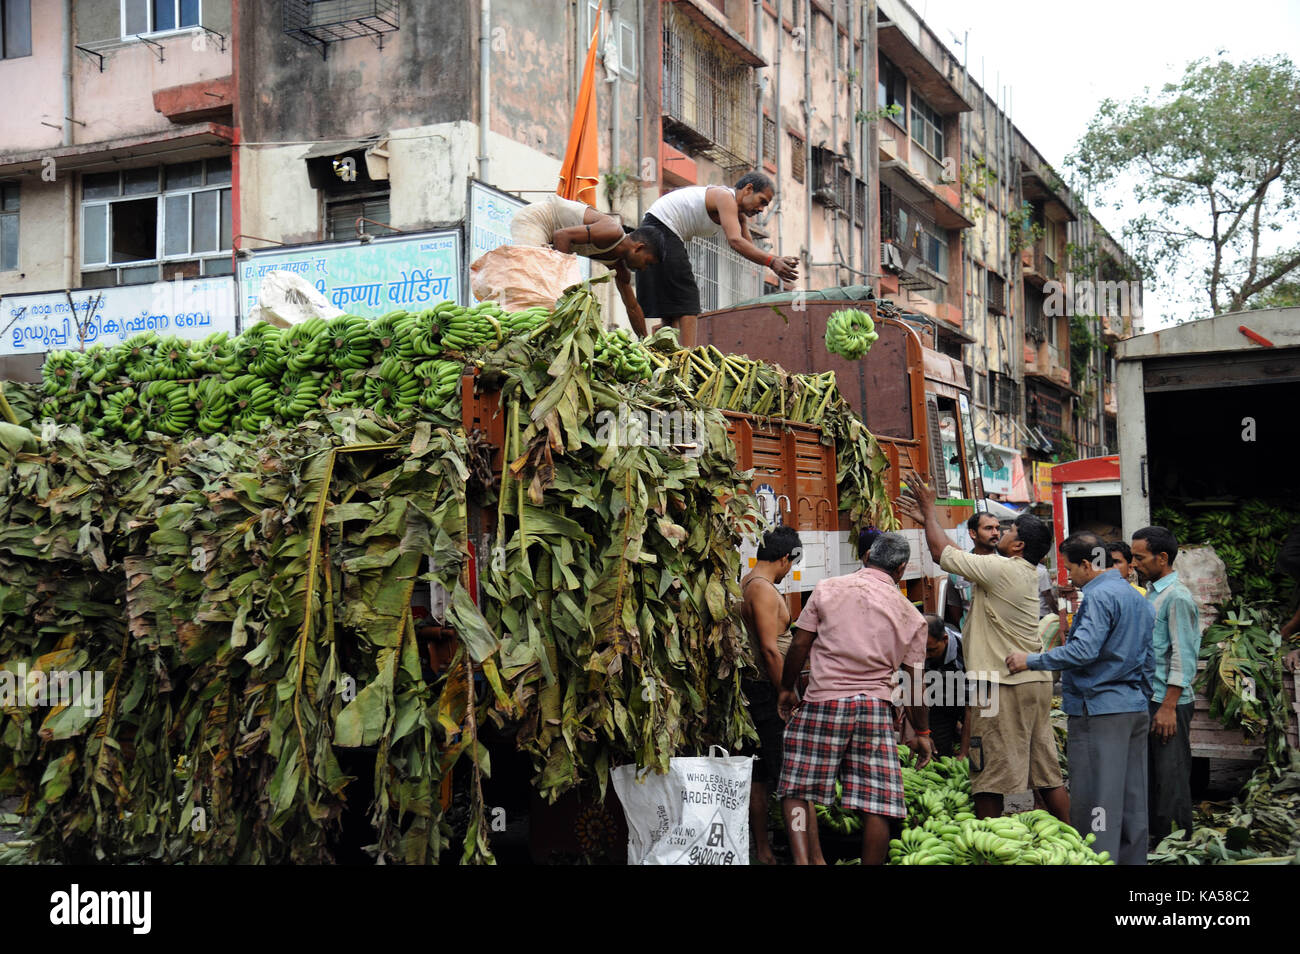 Wholesale Dealers Stock Photos & Wholesale Dealers Stock Images - Alamy